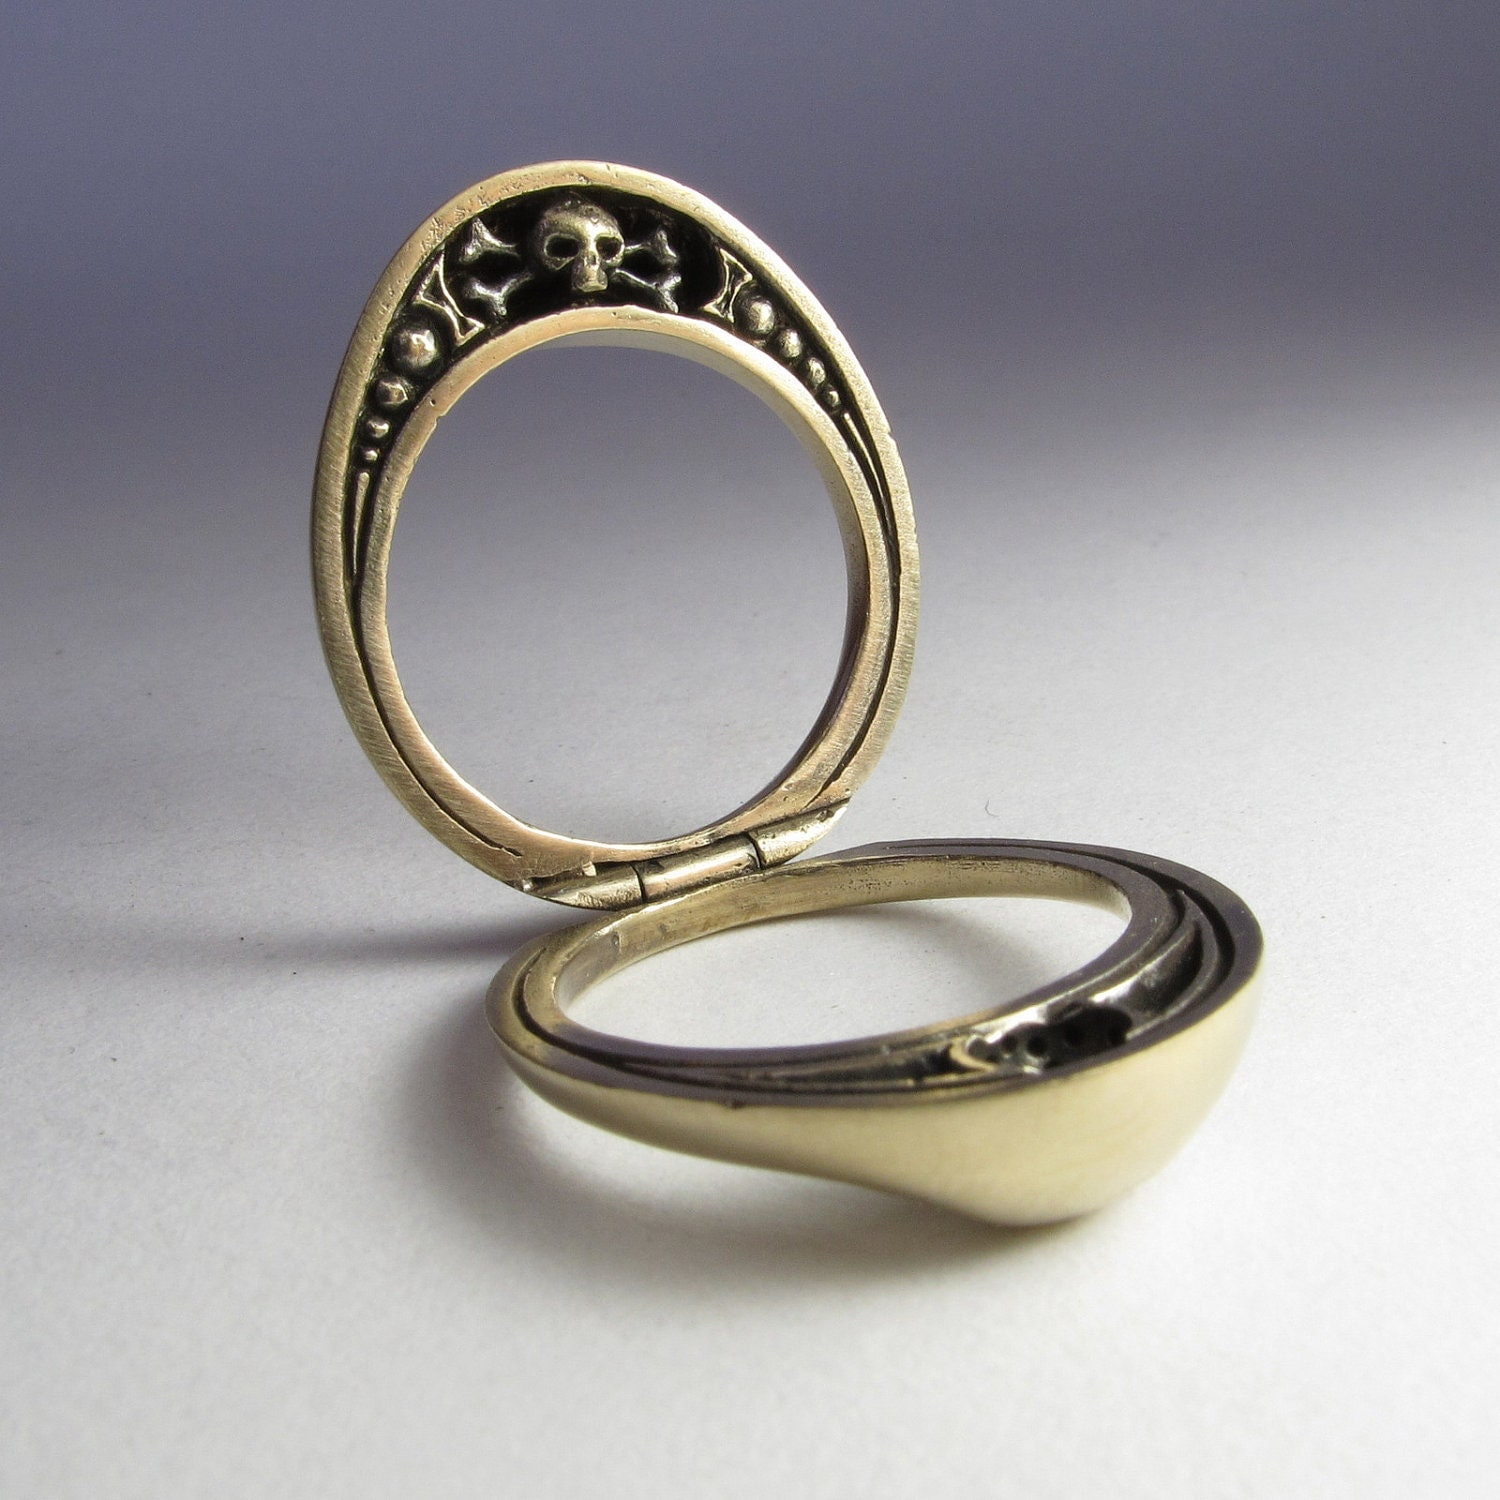 Ring In The Steampunk Decor To Pimp Up Your Home: Split Steampunk Mourning Ring In Solid Bronze With Skull And